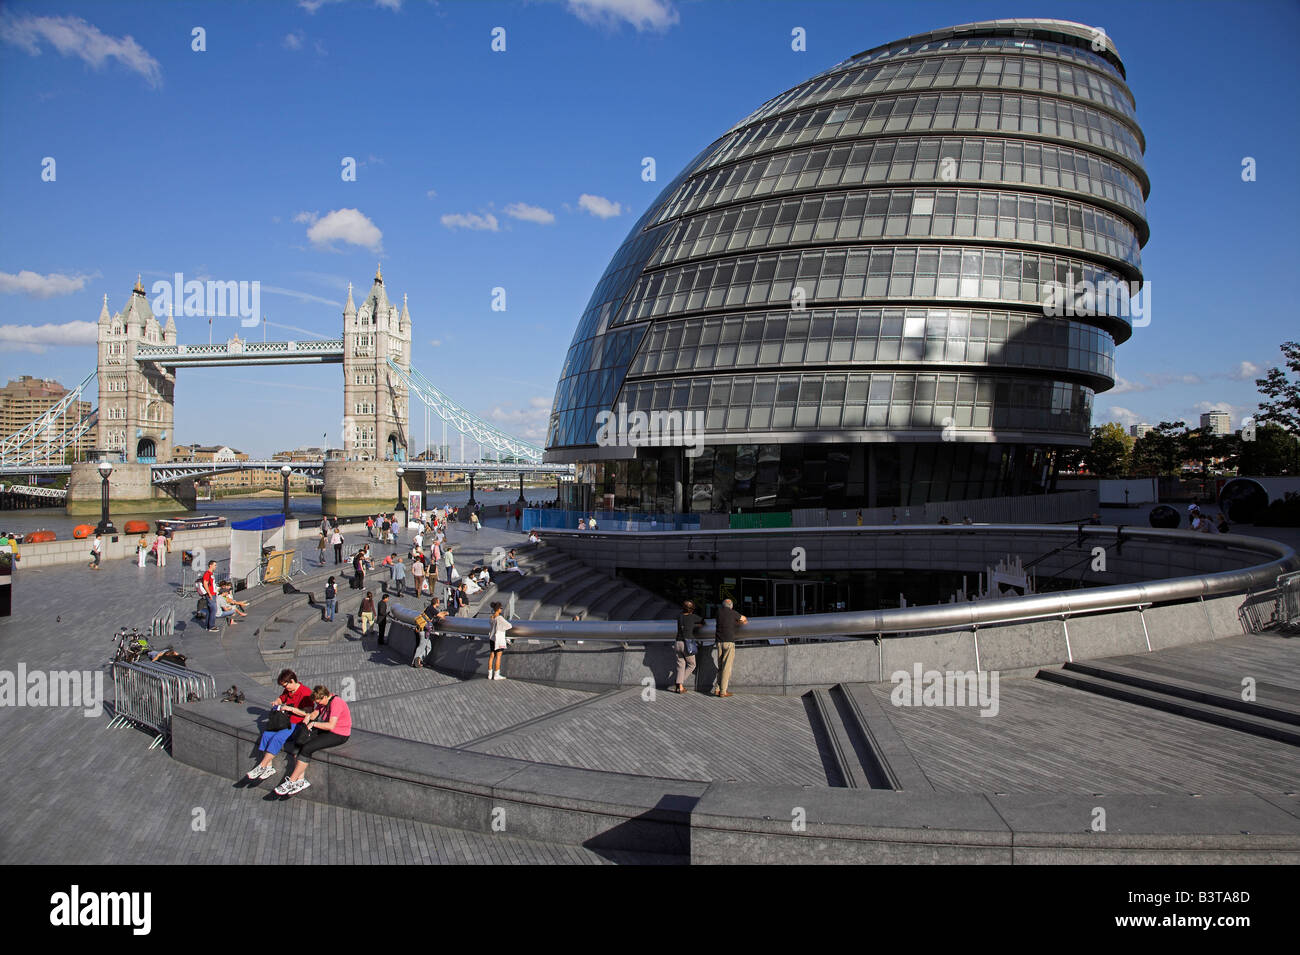 England, London, City Hall on London's south bank, designed by Sir Norman Foster. - Stock Image